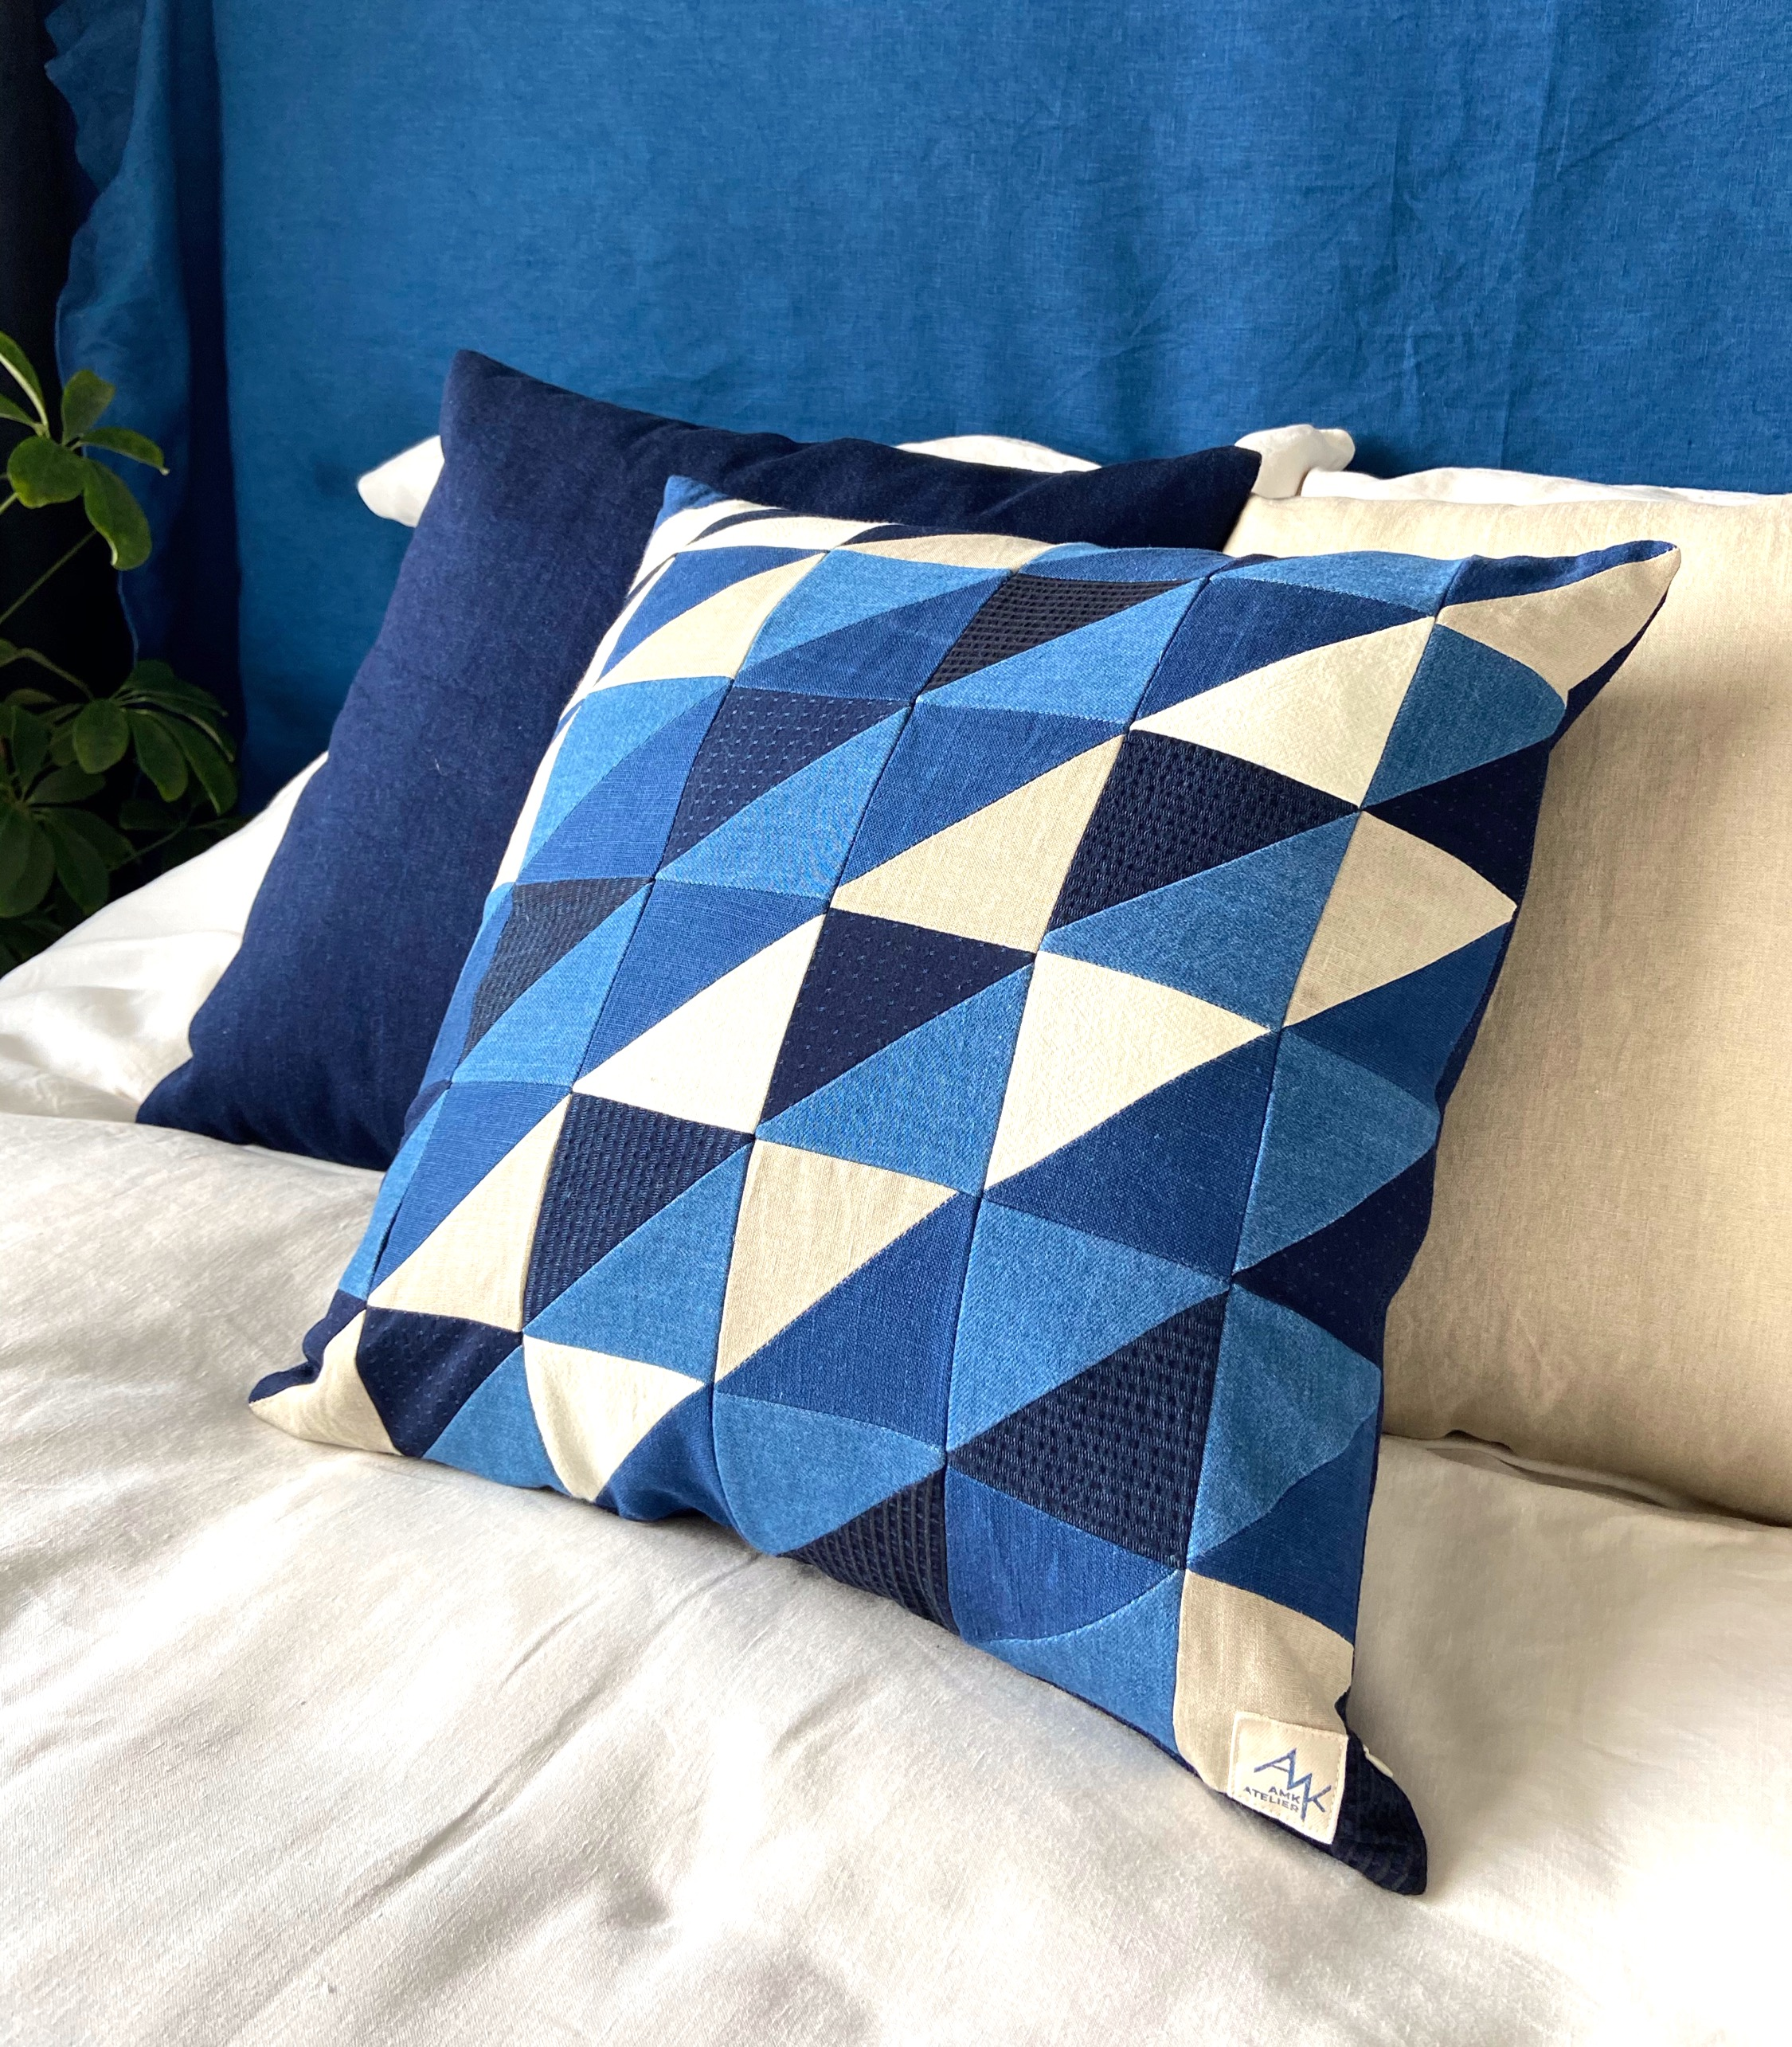 Recycled Materials for Pillows